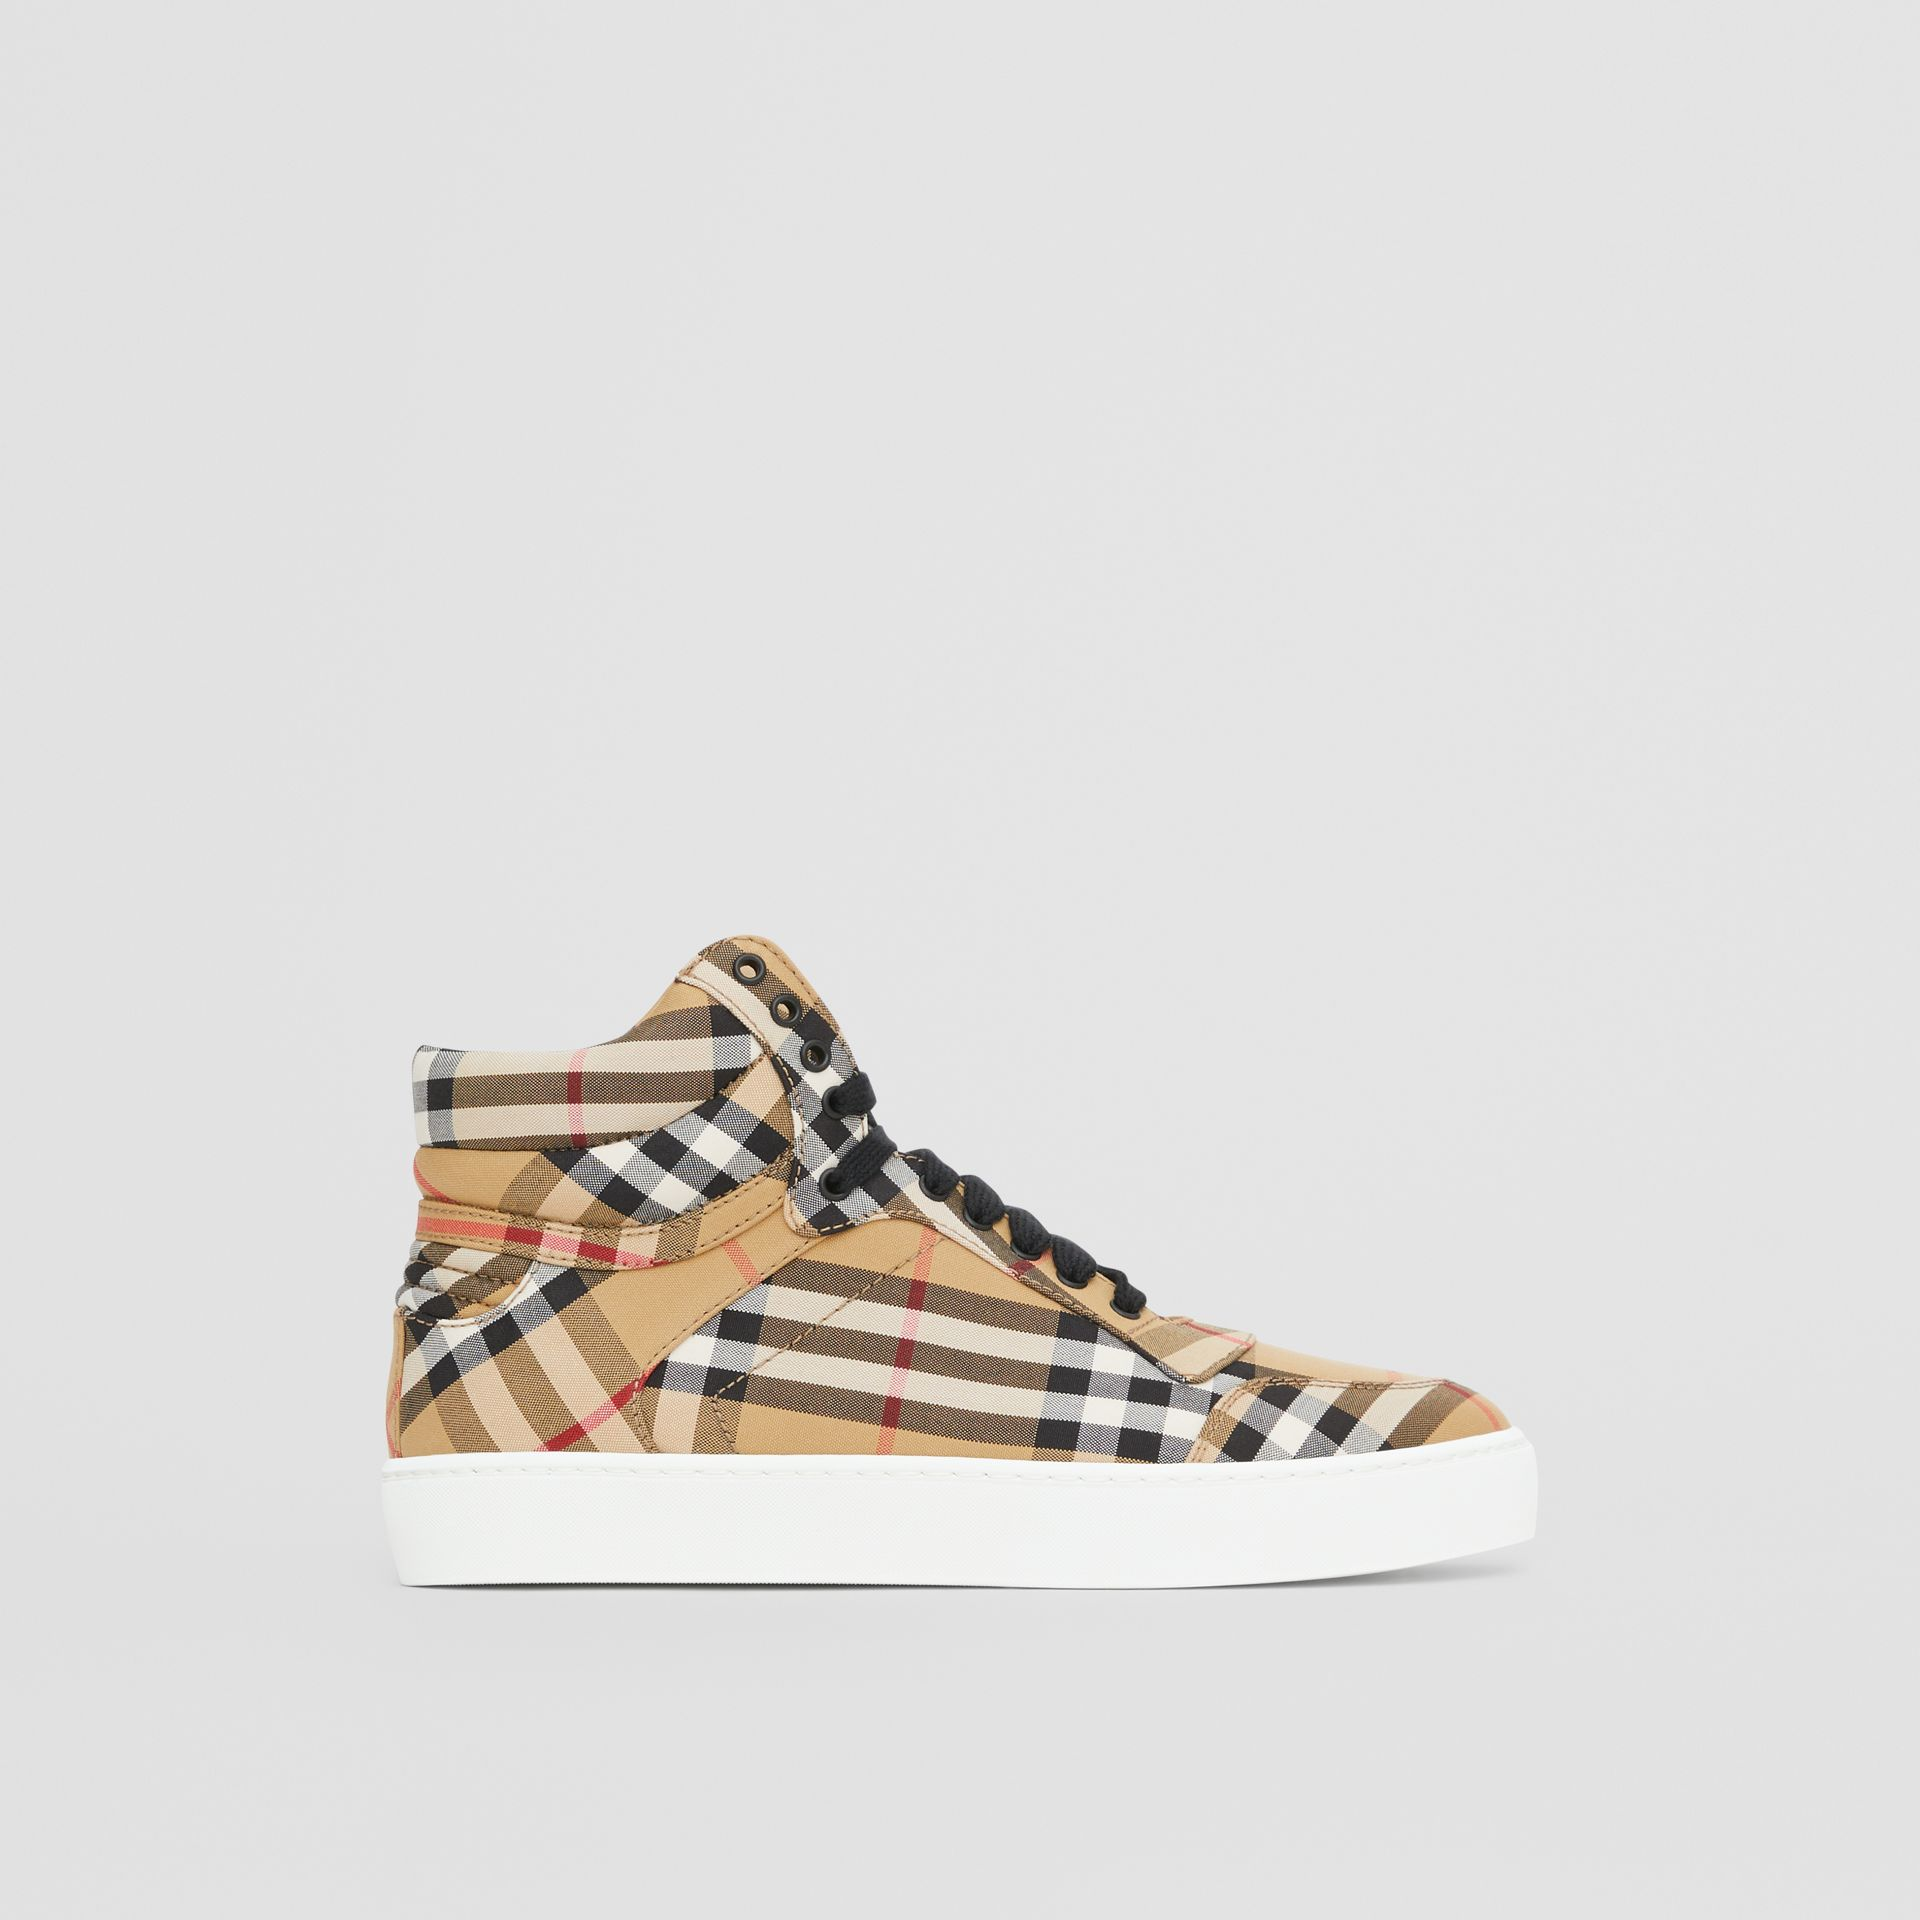 Vintage Check Cotton High-top Sneakers in Antique Yellow - Women | Burberry - gallery image 5